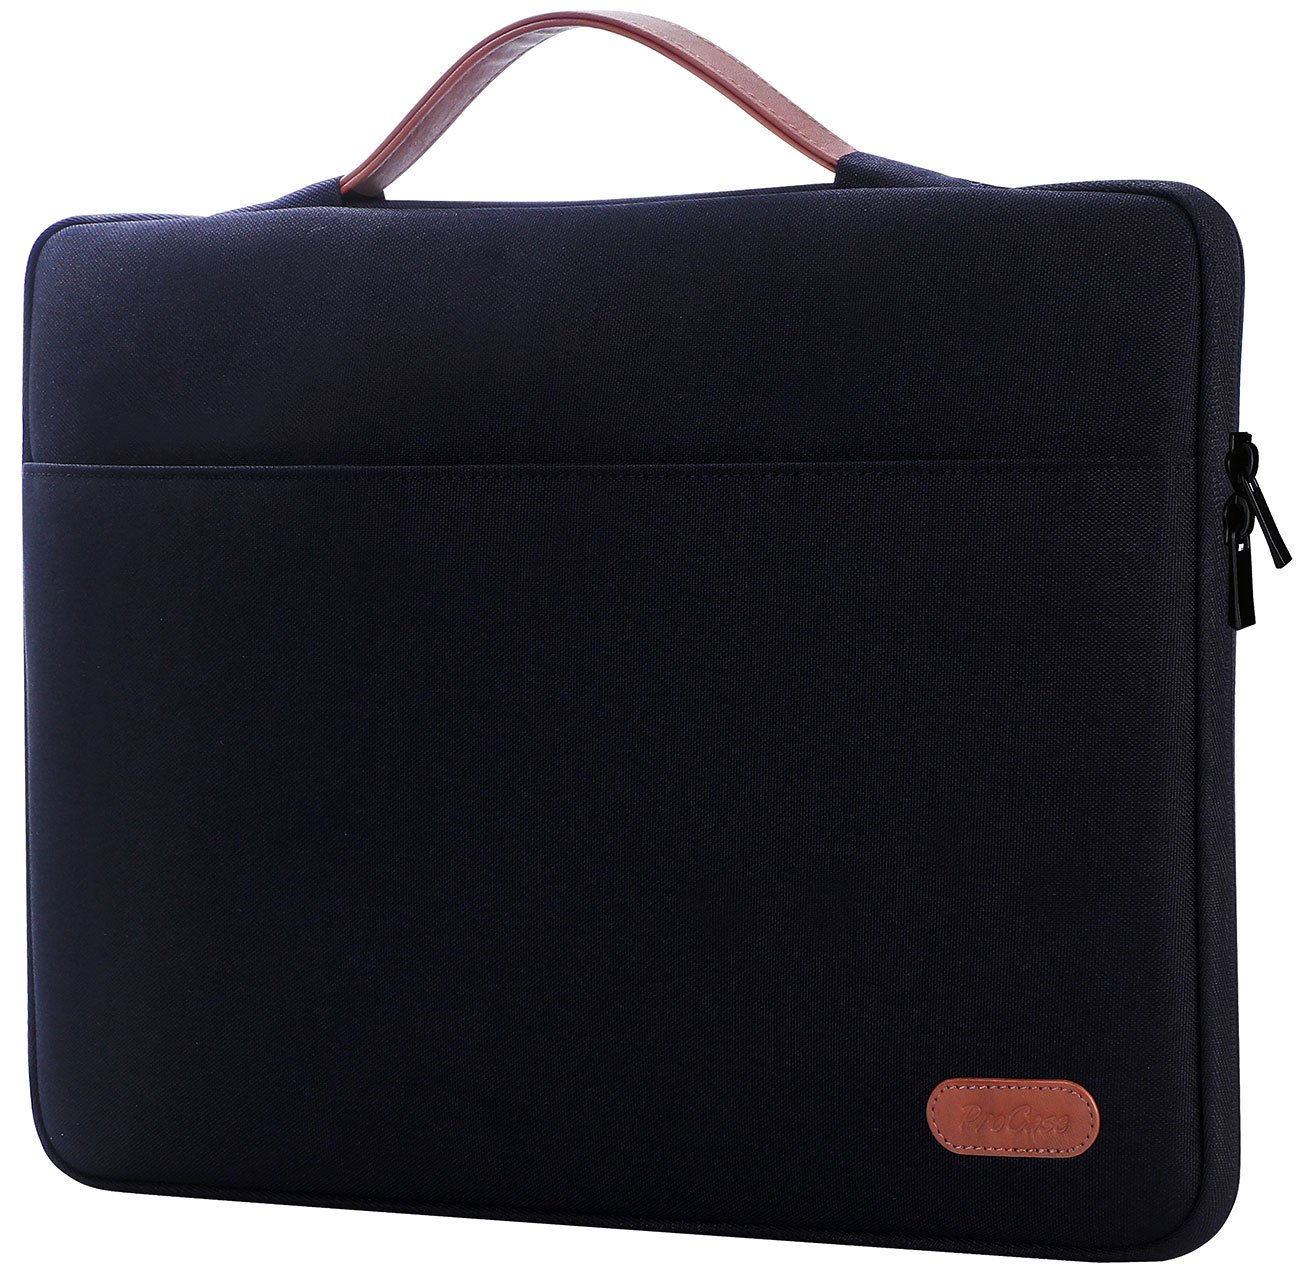 Amazon Com Procase 14 15 6 Inch Laptop Sleeve Case Protective Bag Ultrabook Notebook Carrying Case Handbag For Macbook Pro 16 14 15 15 6 Dell Lenovo Hp Asus Acer Samsung Sony Chromebook Computer Black